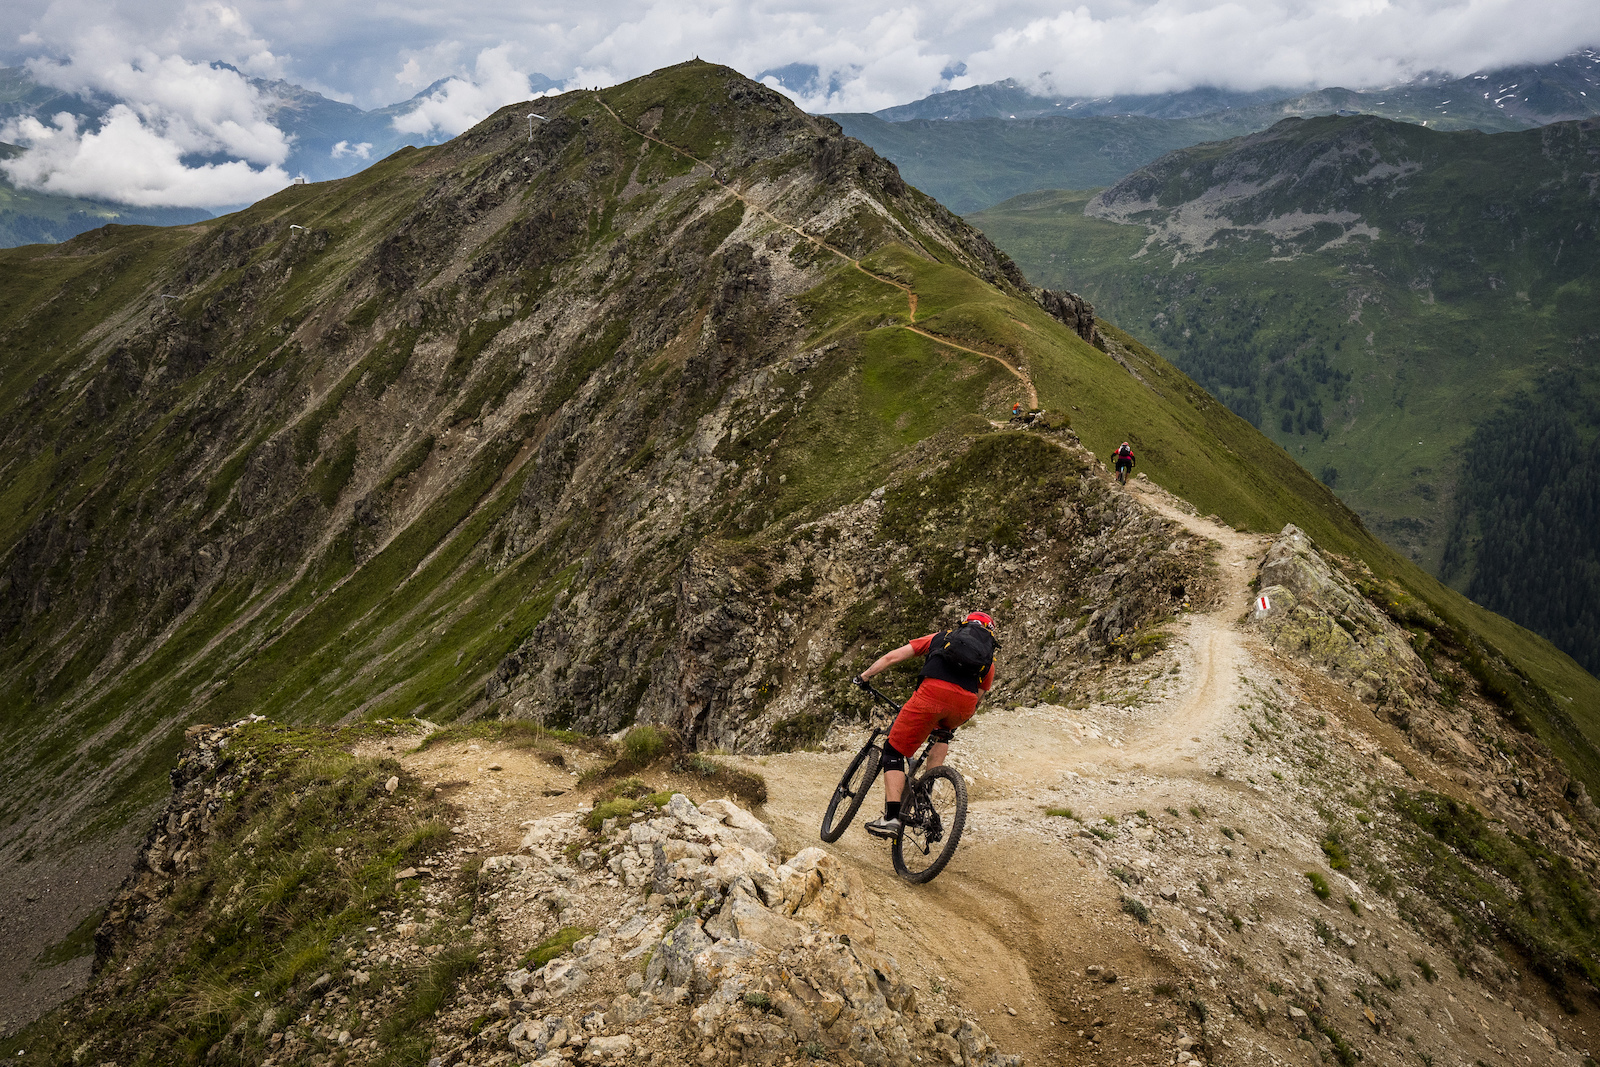 Davos-LKlosters boasts 700 Km of marked trails to ride. Anthony and Denny like living here.